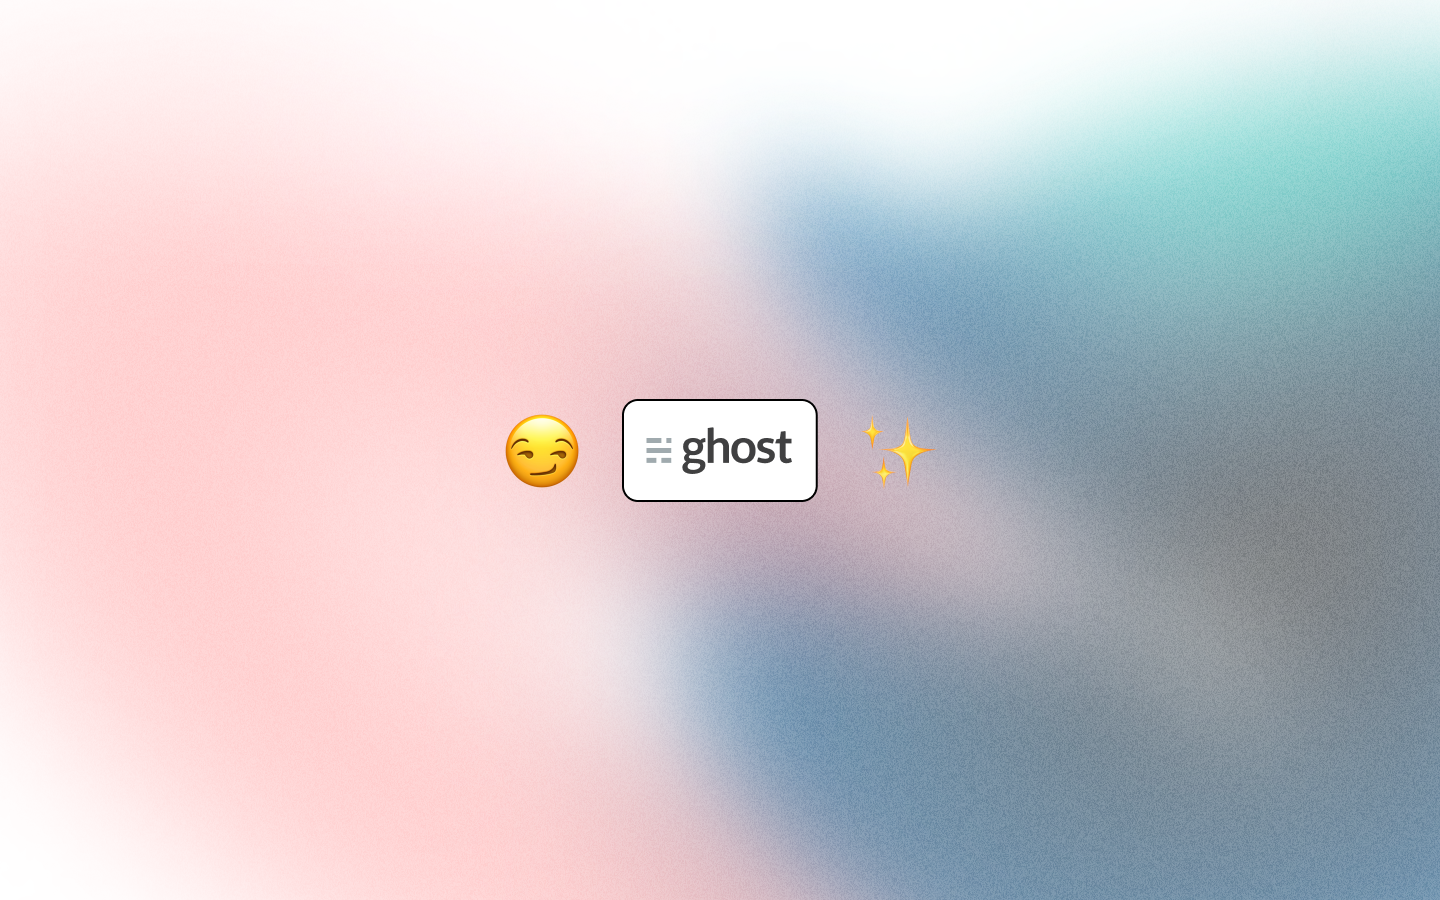 Ghost logo on white rounded rectangle between smirking face emoji and sparkles emoji on gradient background.